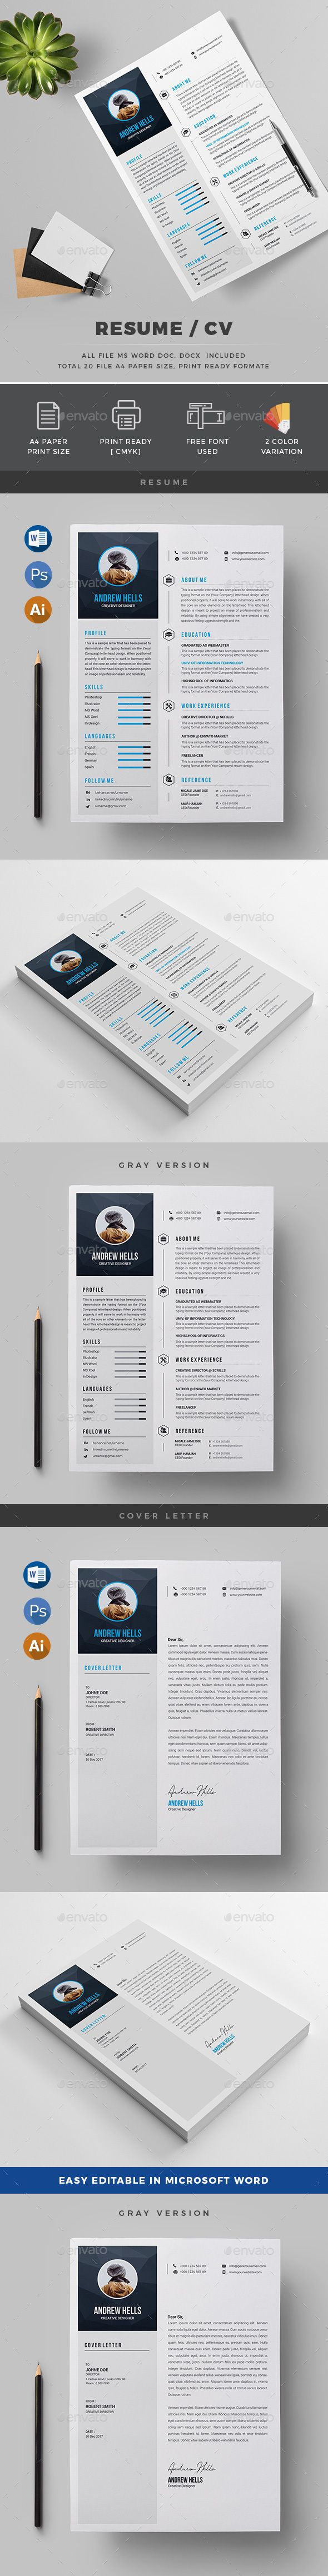 198 best Resume Inspiration images on Pinterest | Resume templates ...